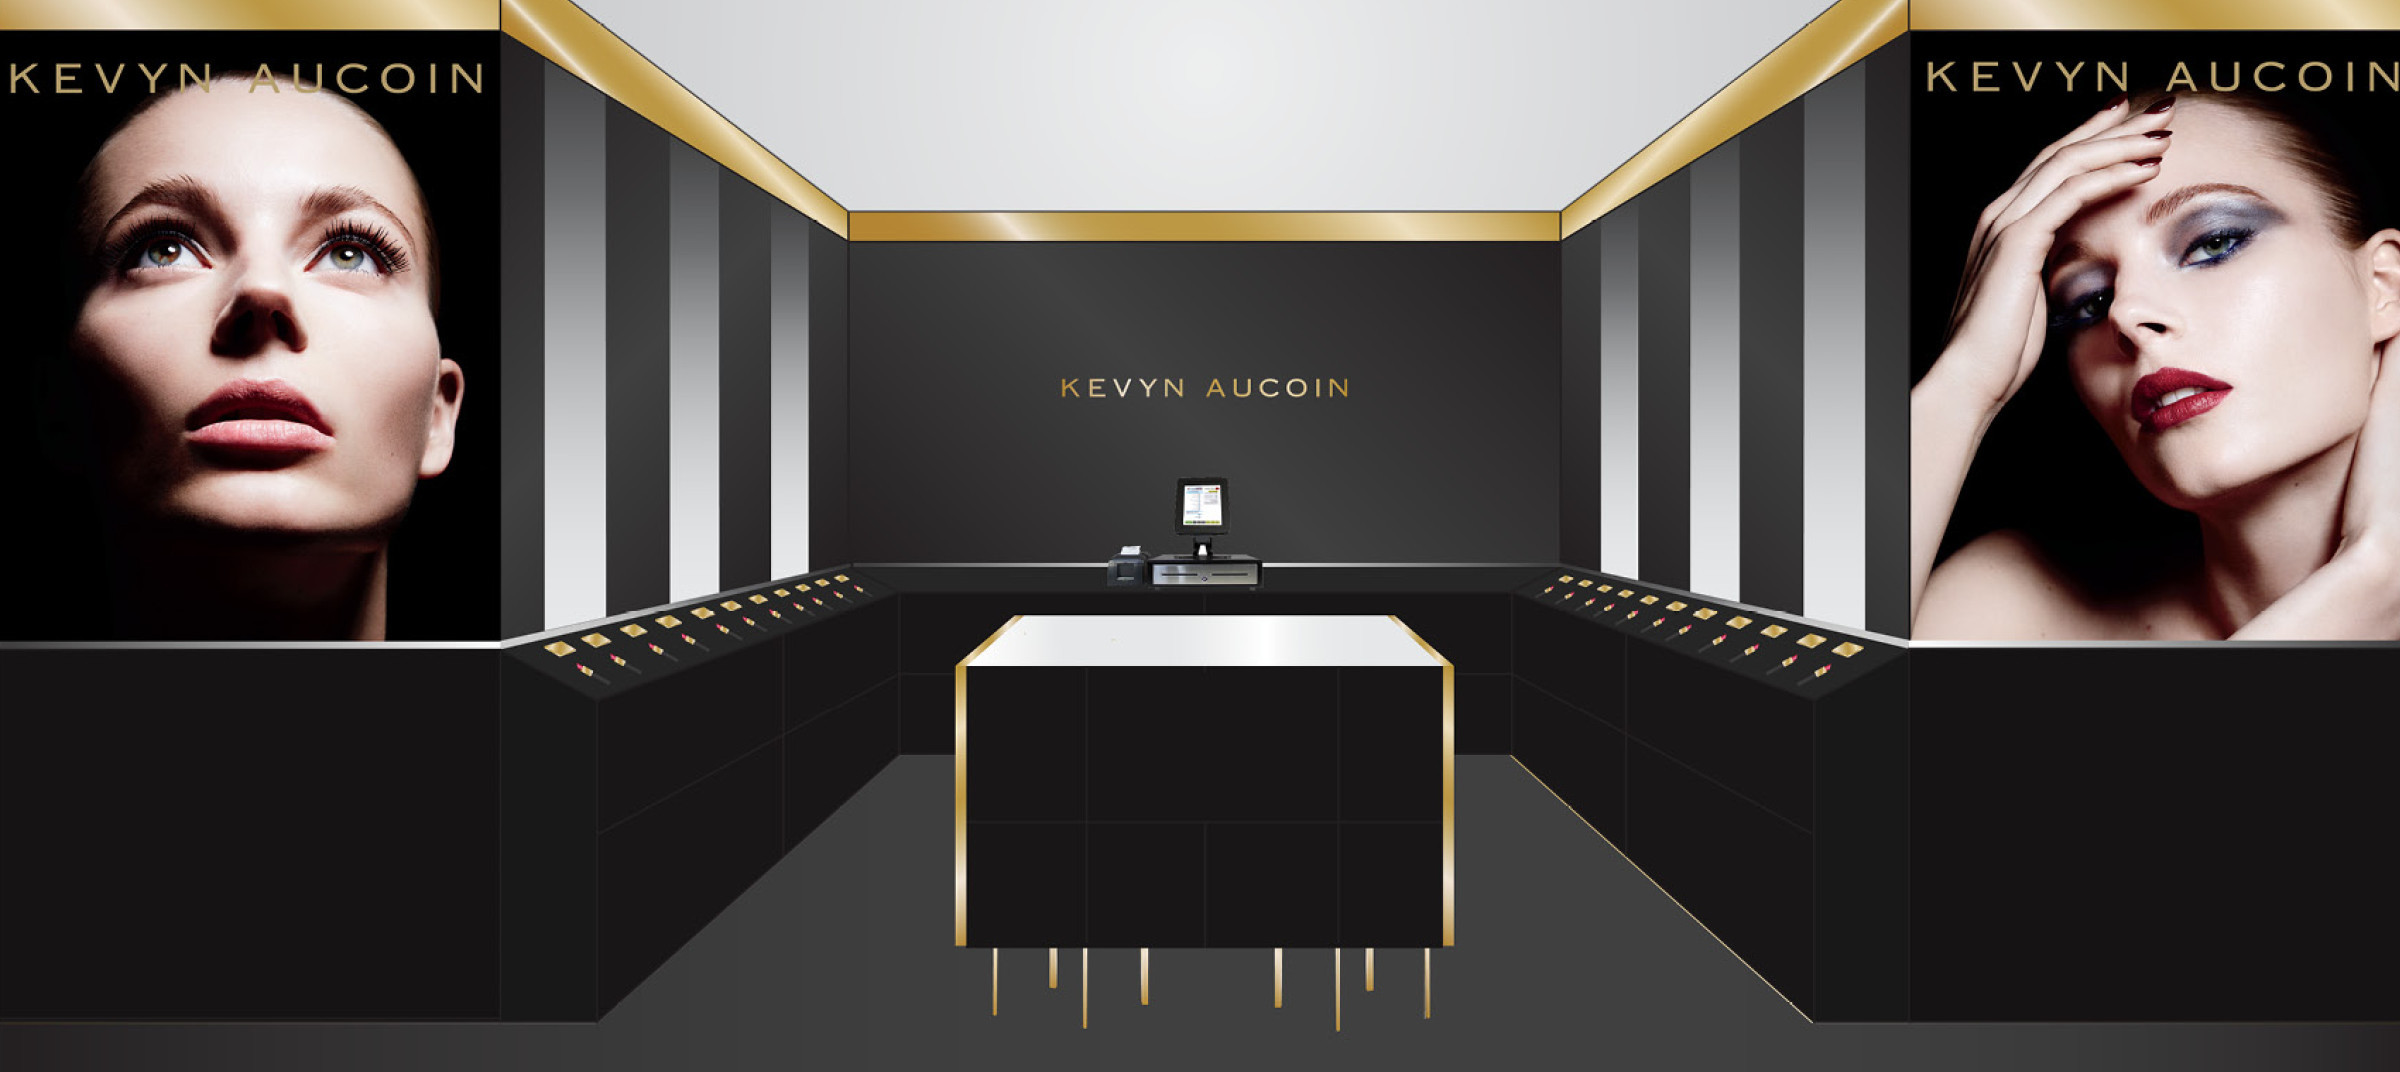 Kevyn Aucoin 3D rendered makeup counter space created by DTE Studio